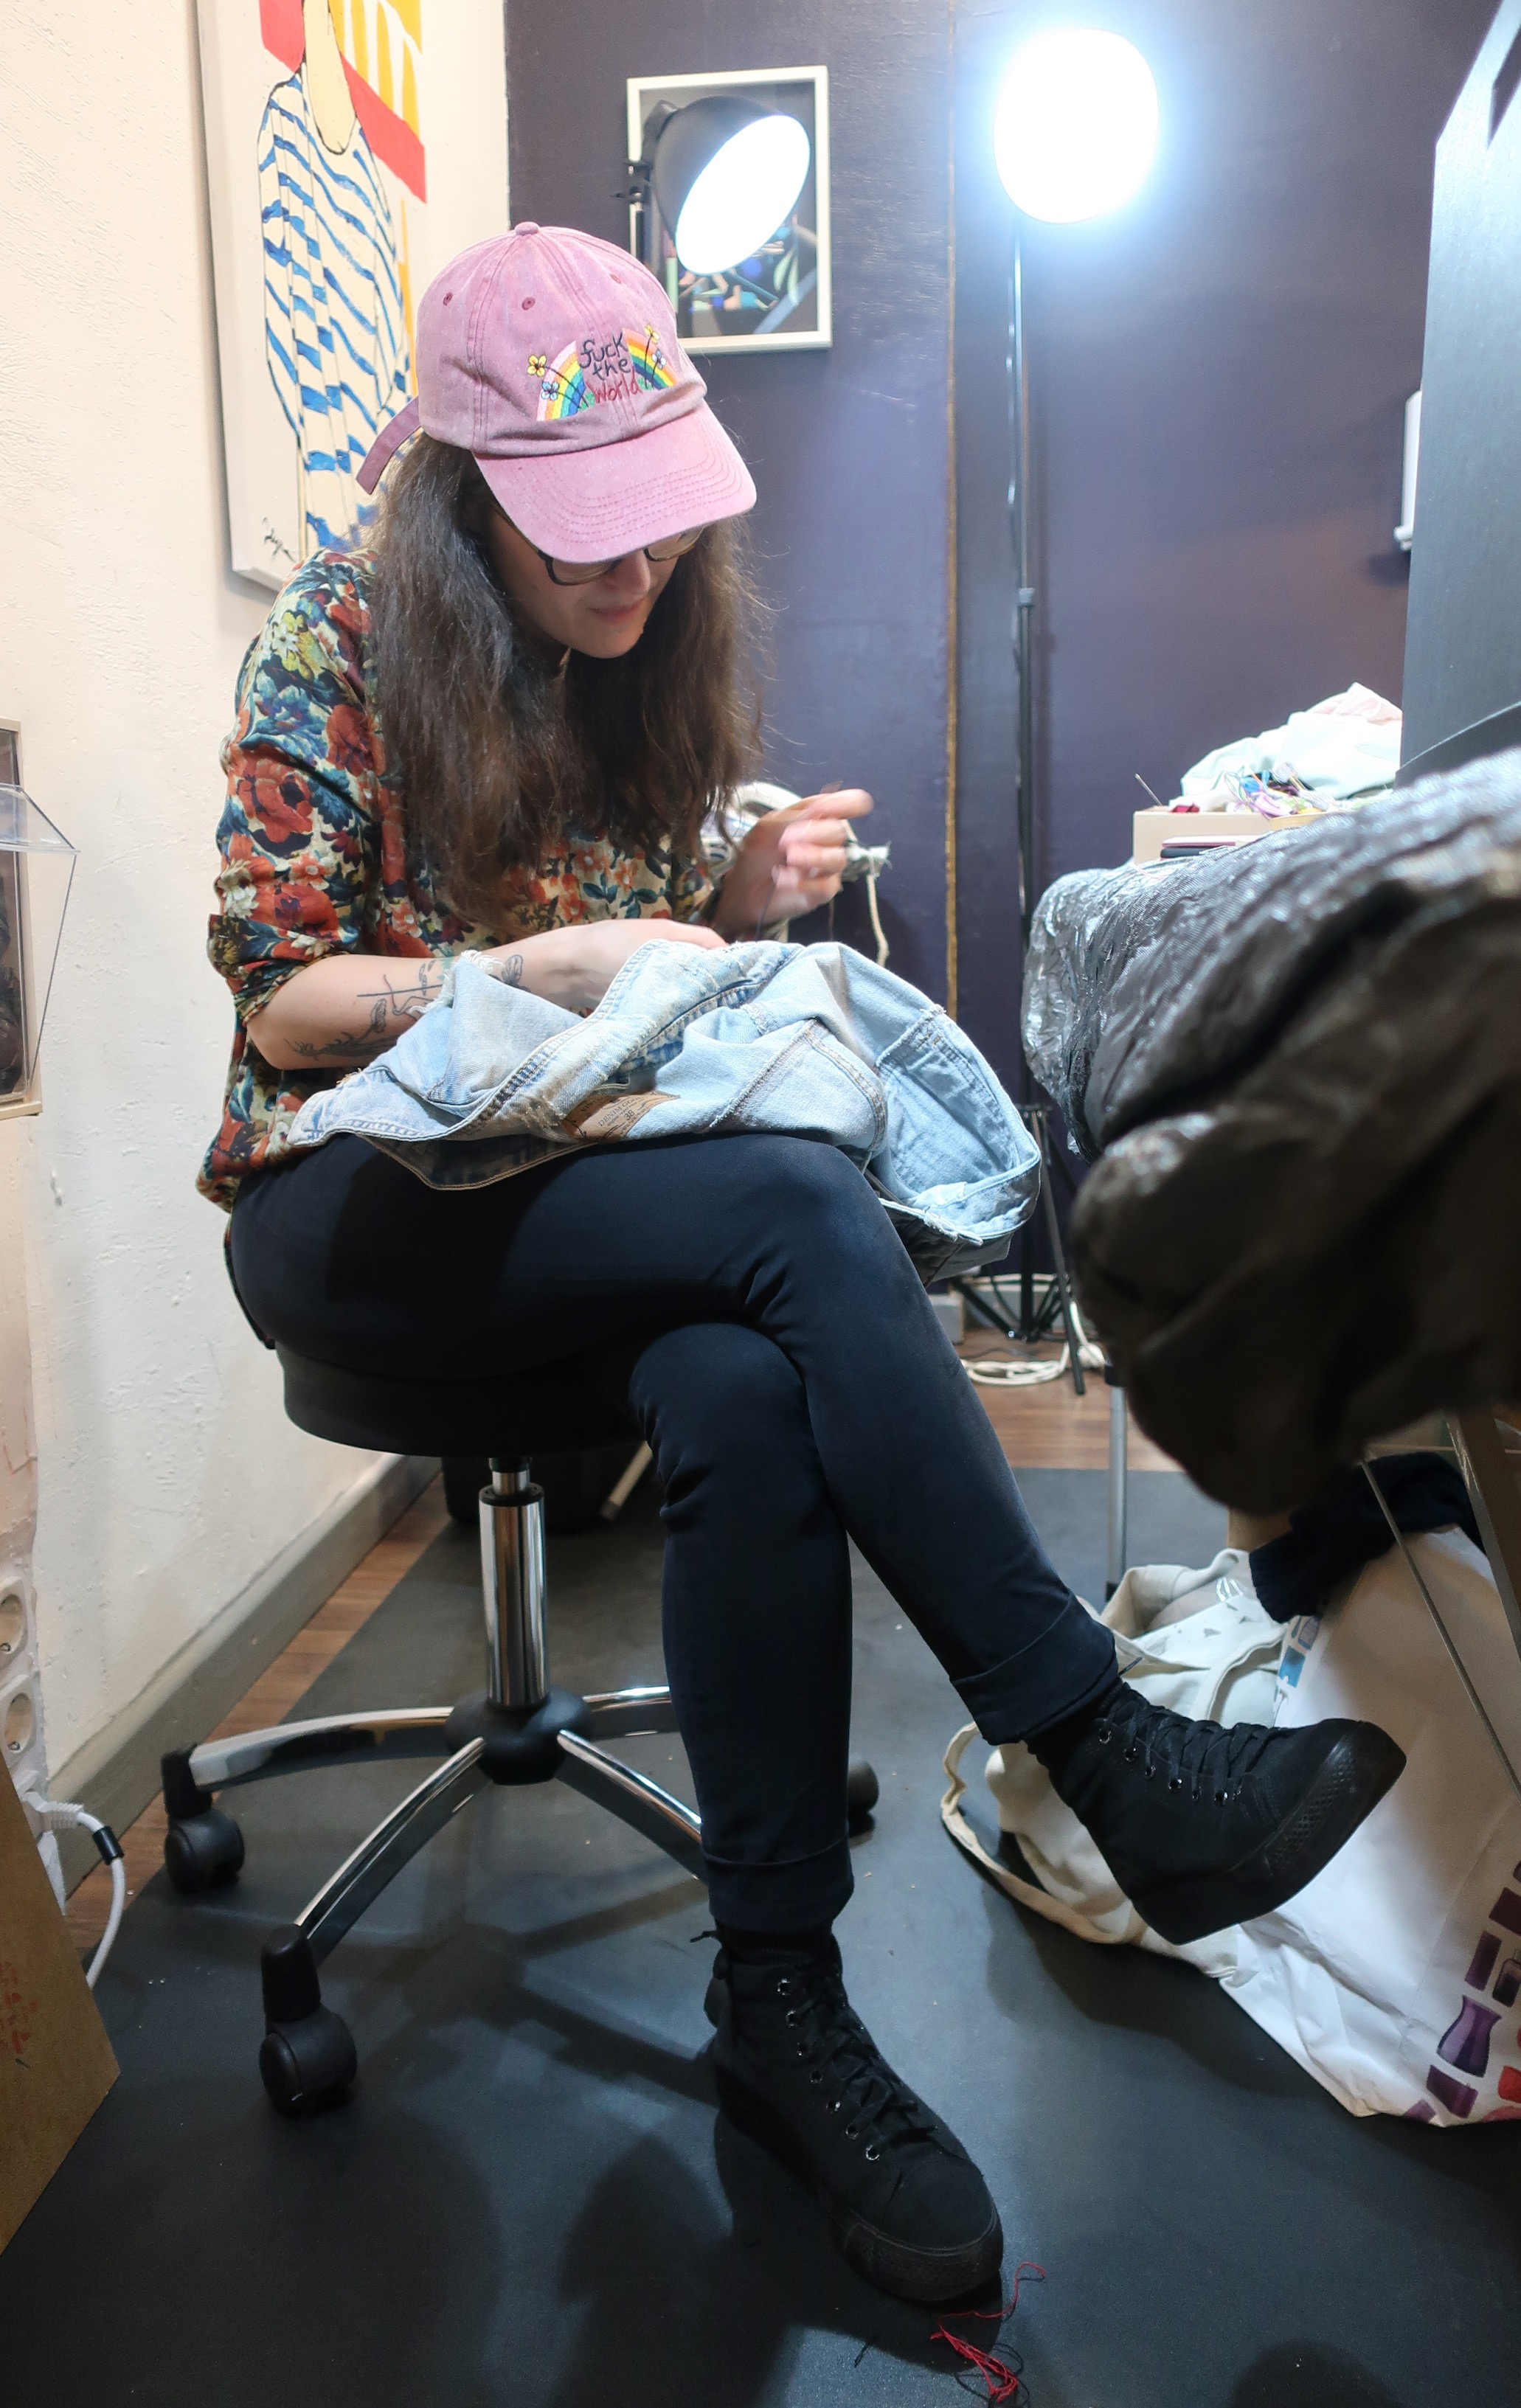 Artist Laura Lesser embroidering denim .jpeg